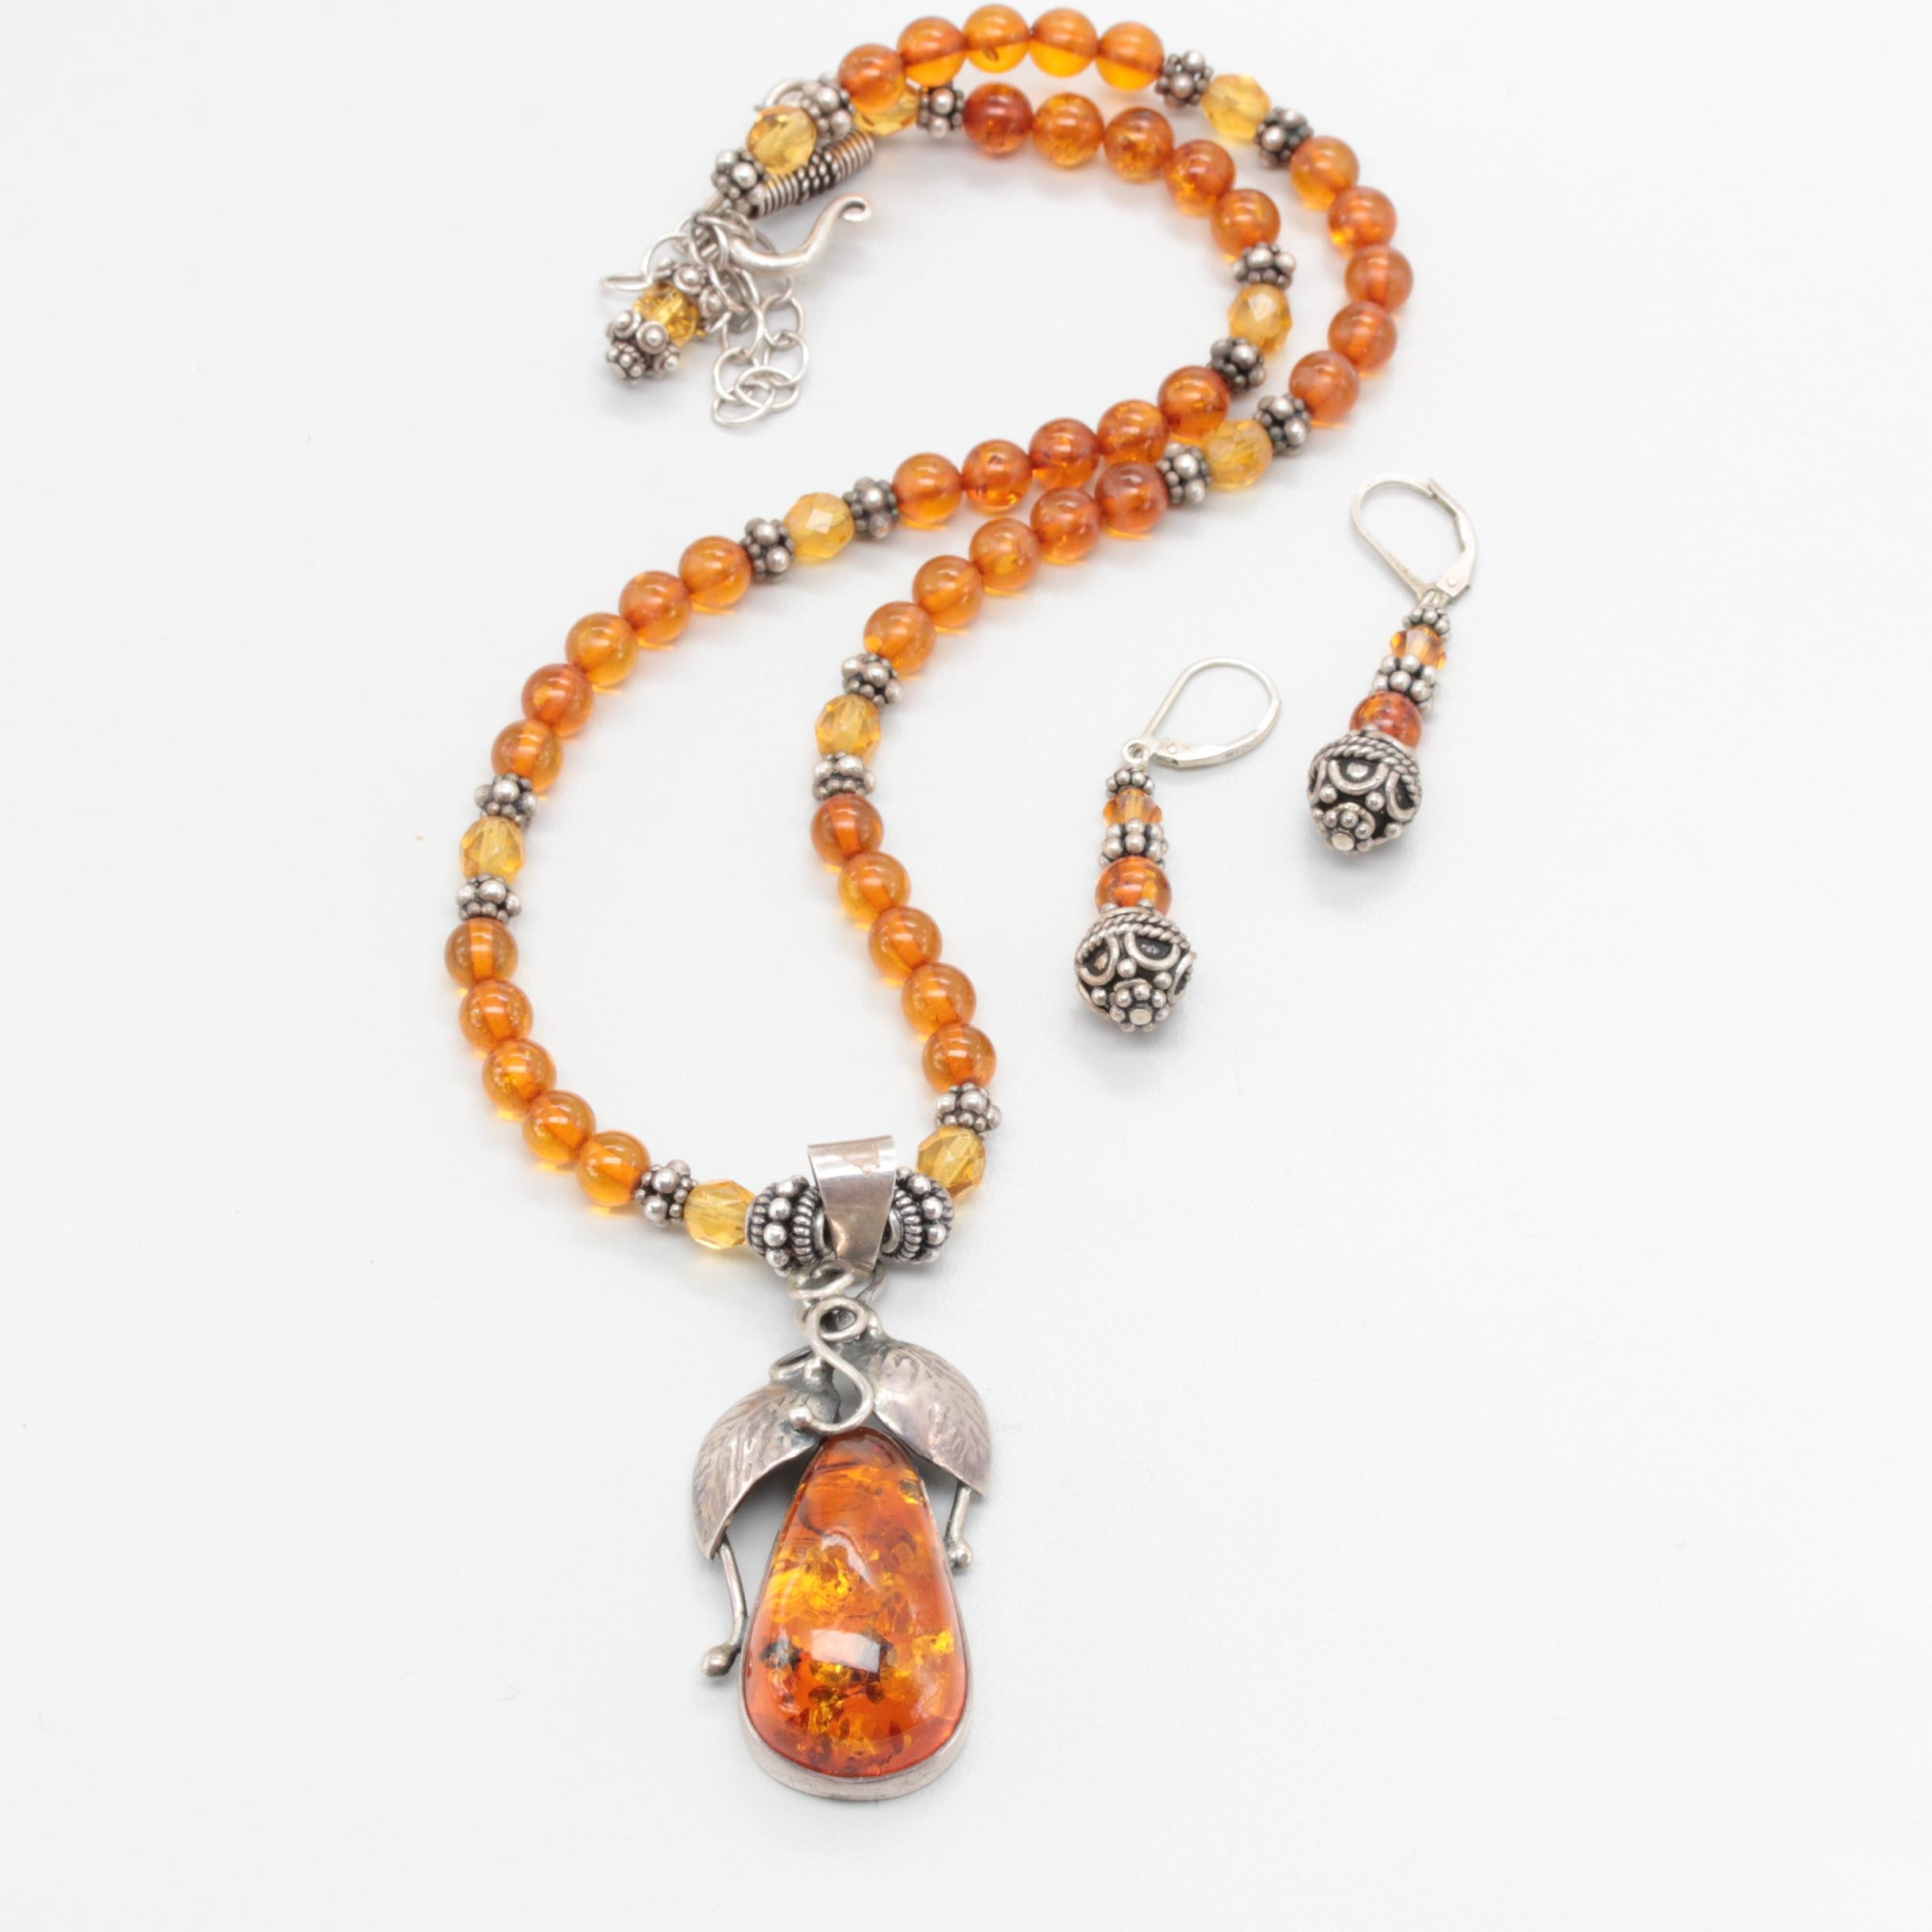 Sterling Silver Amber and Glass Necklace and Earrings